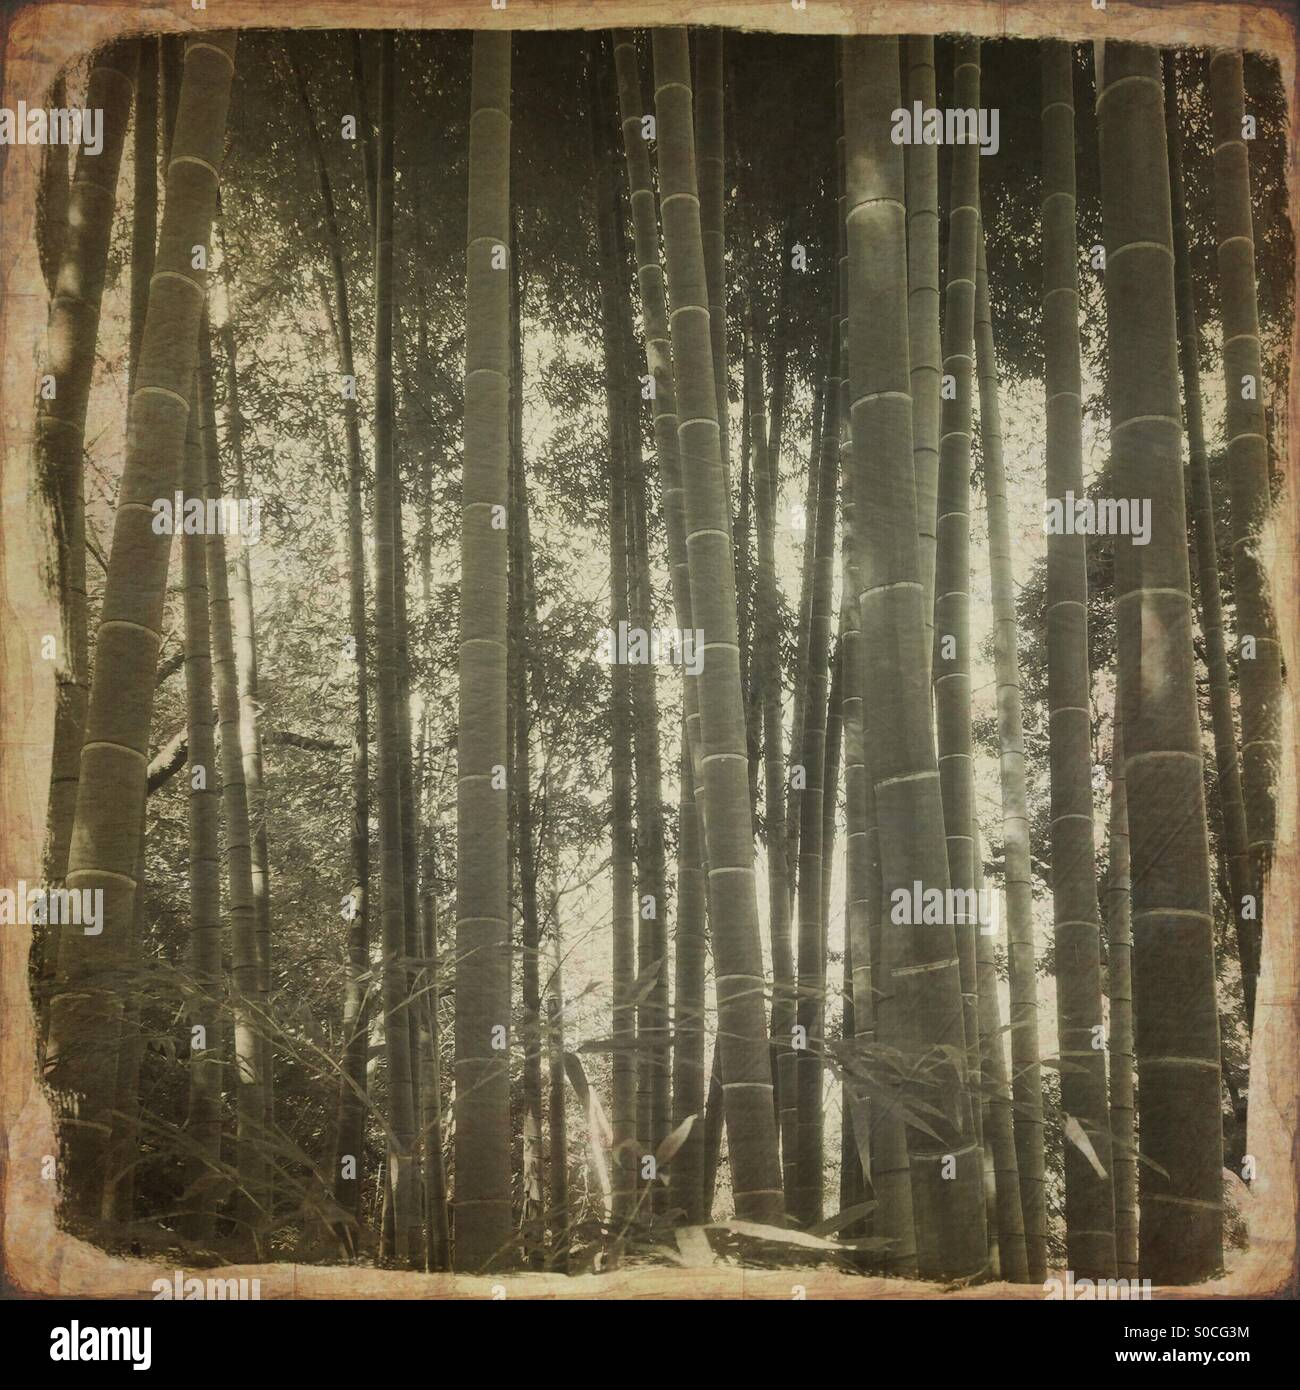 Bamboo grove with vintage paper texture overlay. - Stock Image